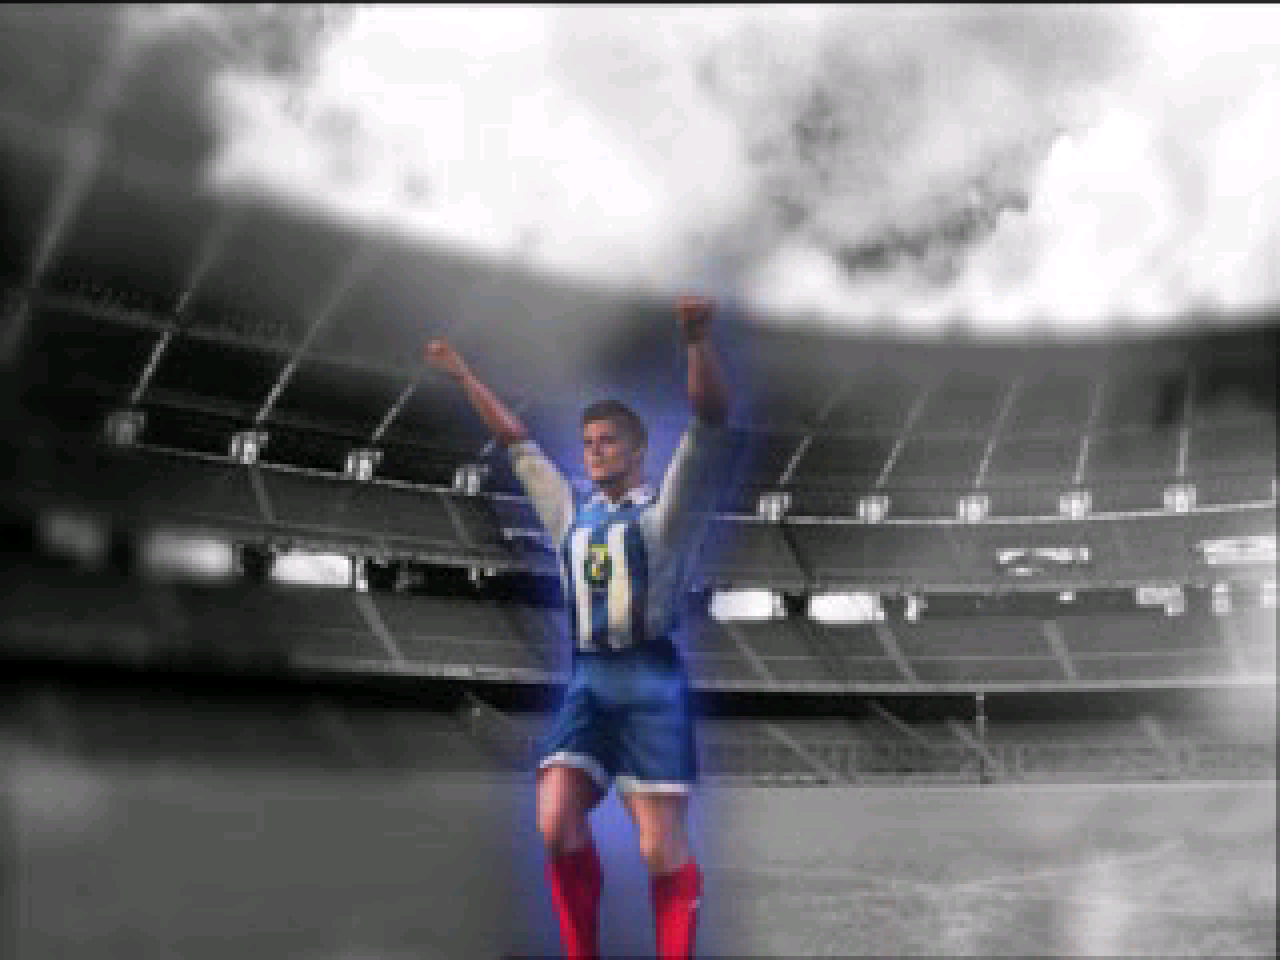 https://s3.eu-west-3.amazonaws.com/games.anthony-dessalles.com/FIFA 99 PS1 2020 - Screenshots/FIFA 99-201123-184756.png